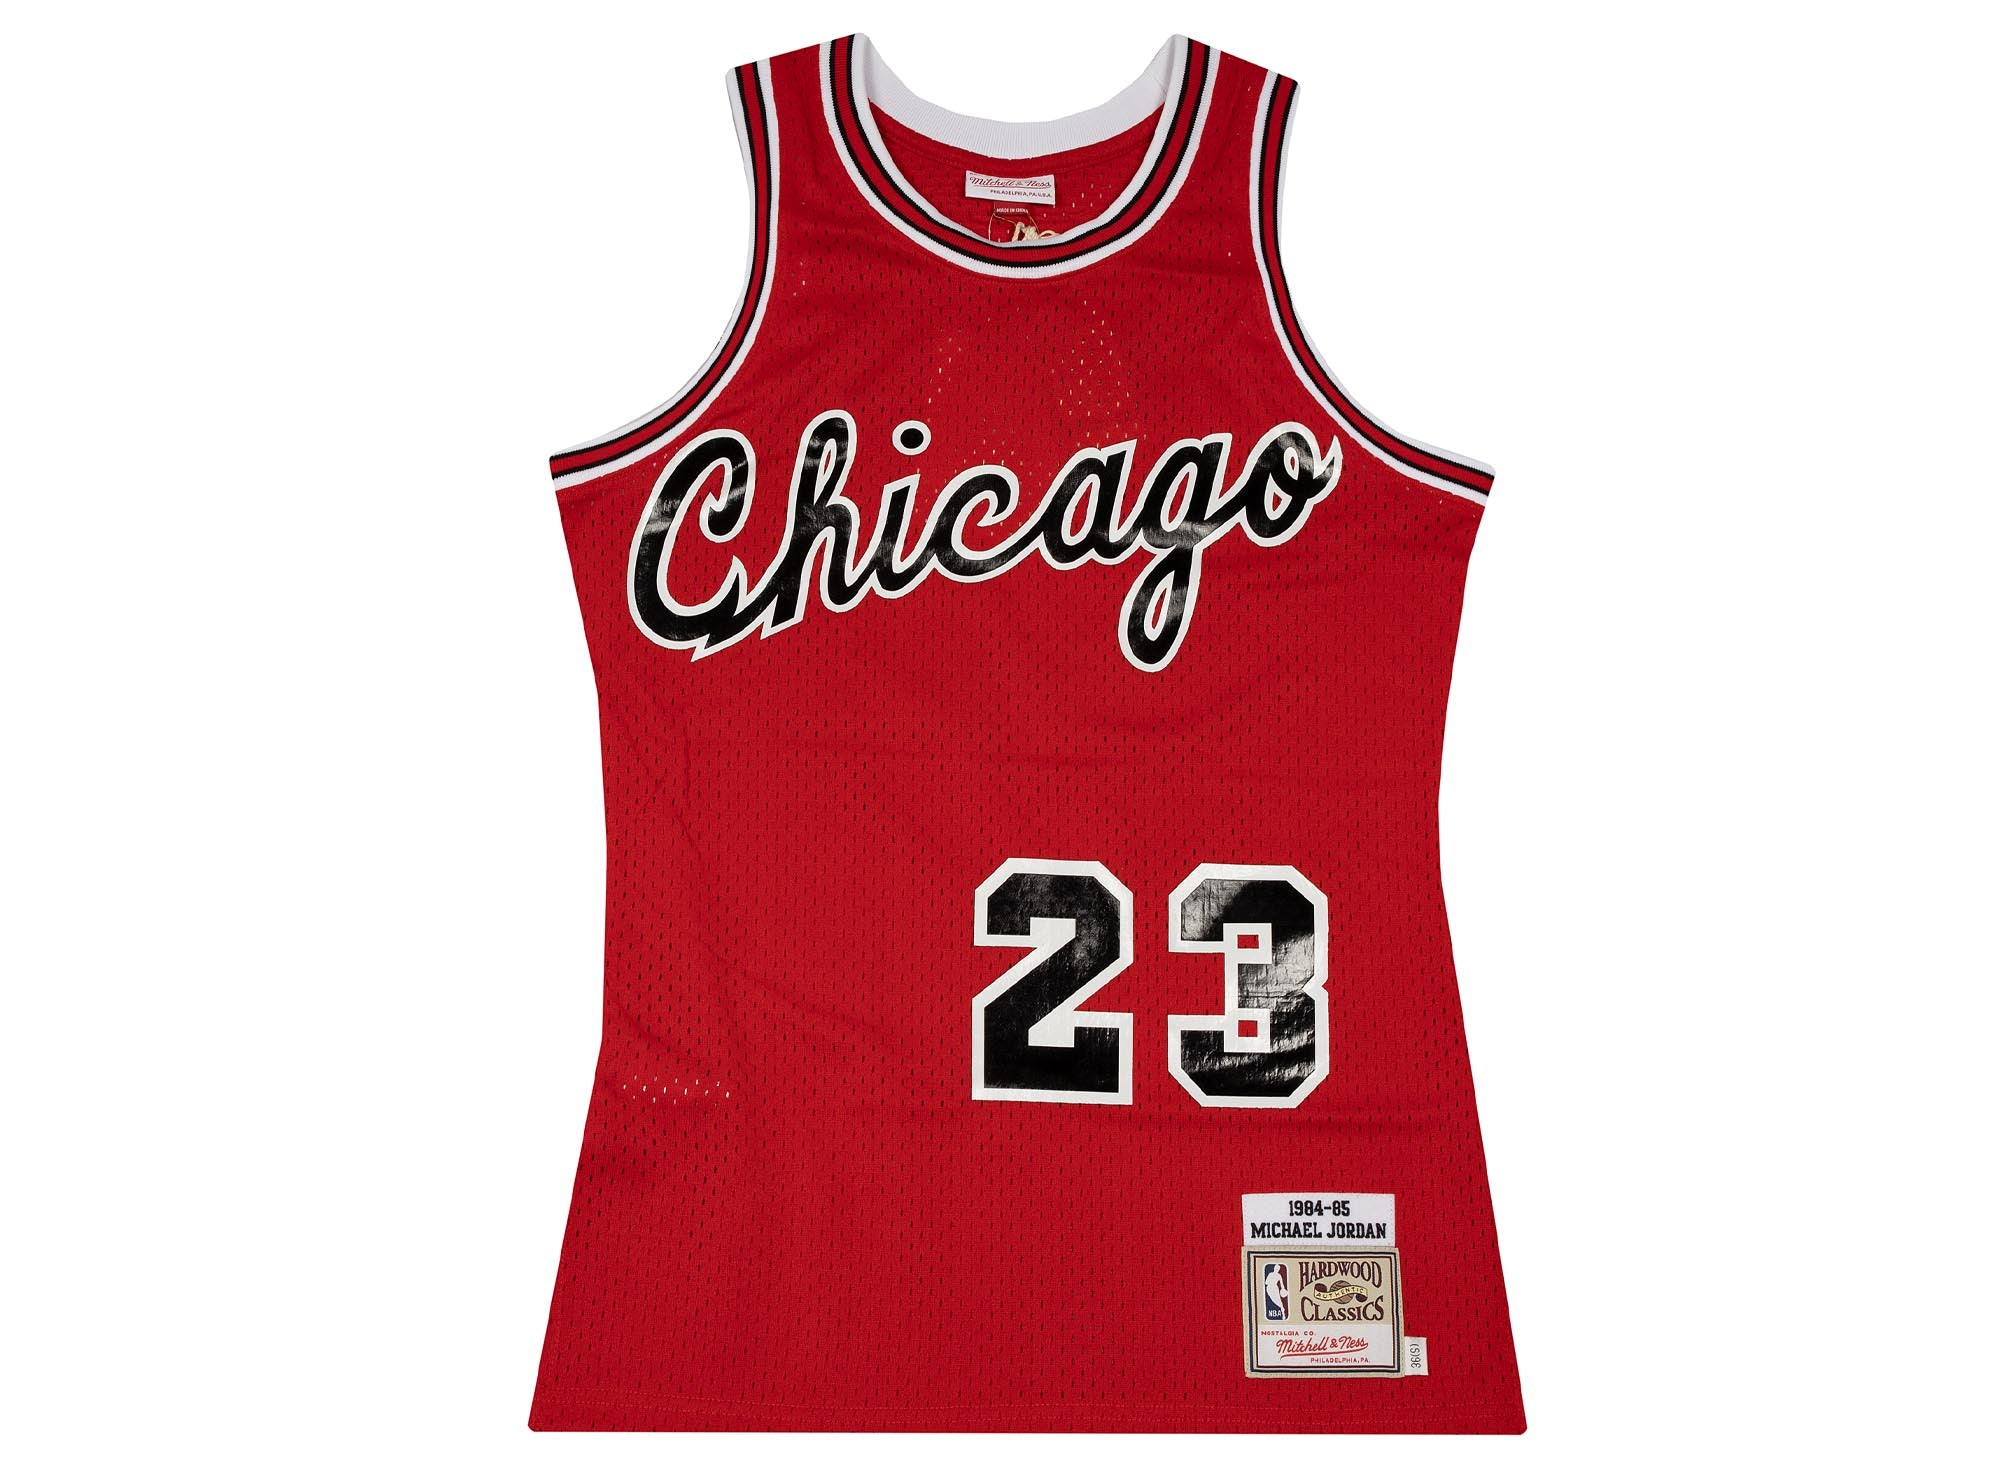 AUTH JERSEY 1984 BULLS MICHAEL JORDAN MITCHELL AND NESS